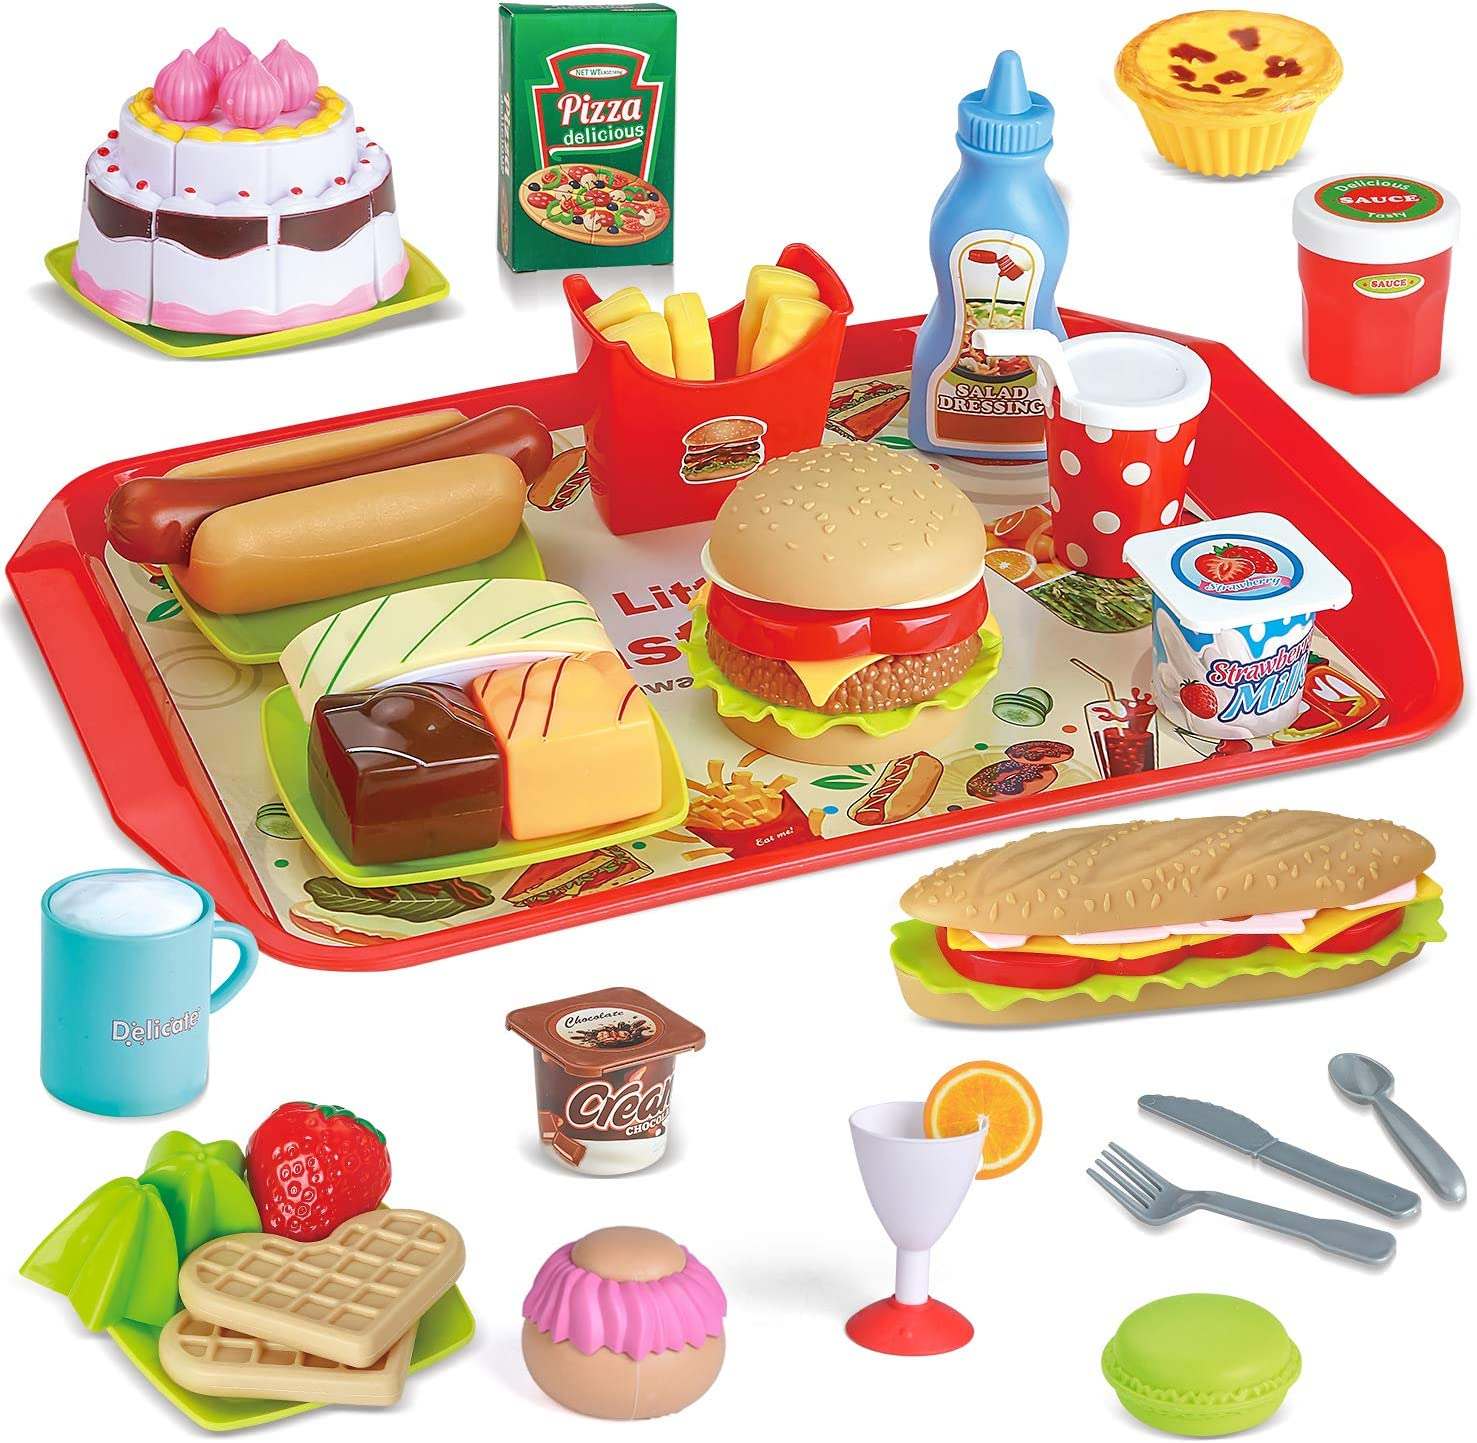 49 PCs Play Food for Kids Kitchen, Toy Foods with Cutting Fruits, Cake and Fast Food for Pretend Play, Play Kitchen Accessories